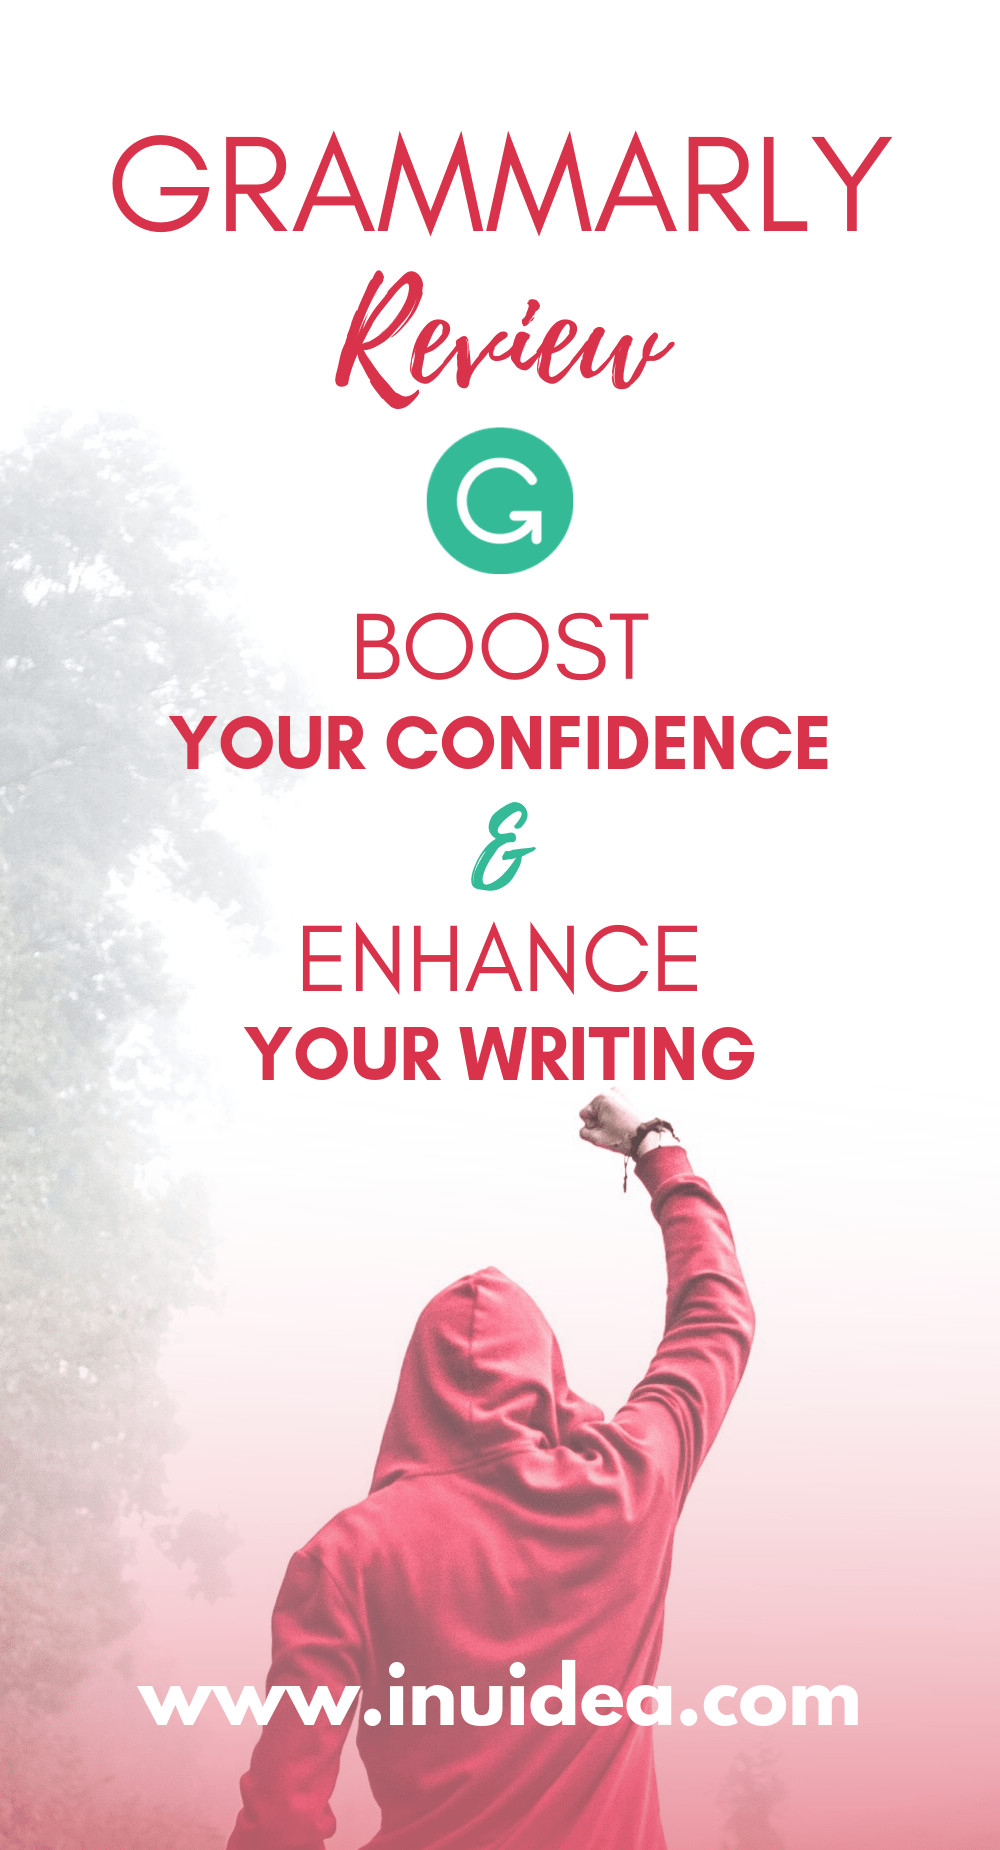 Buy Grammarly Proofreading Software For Sale